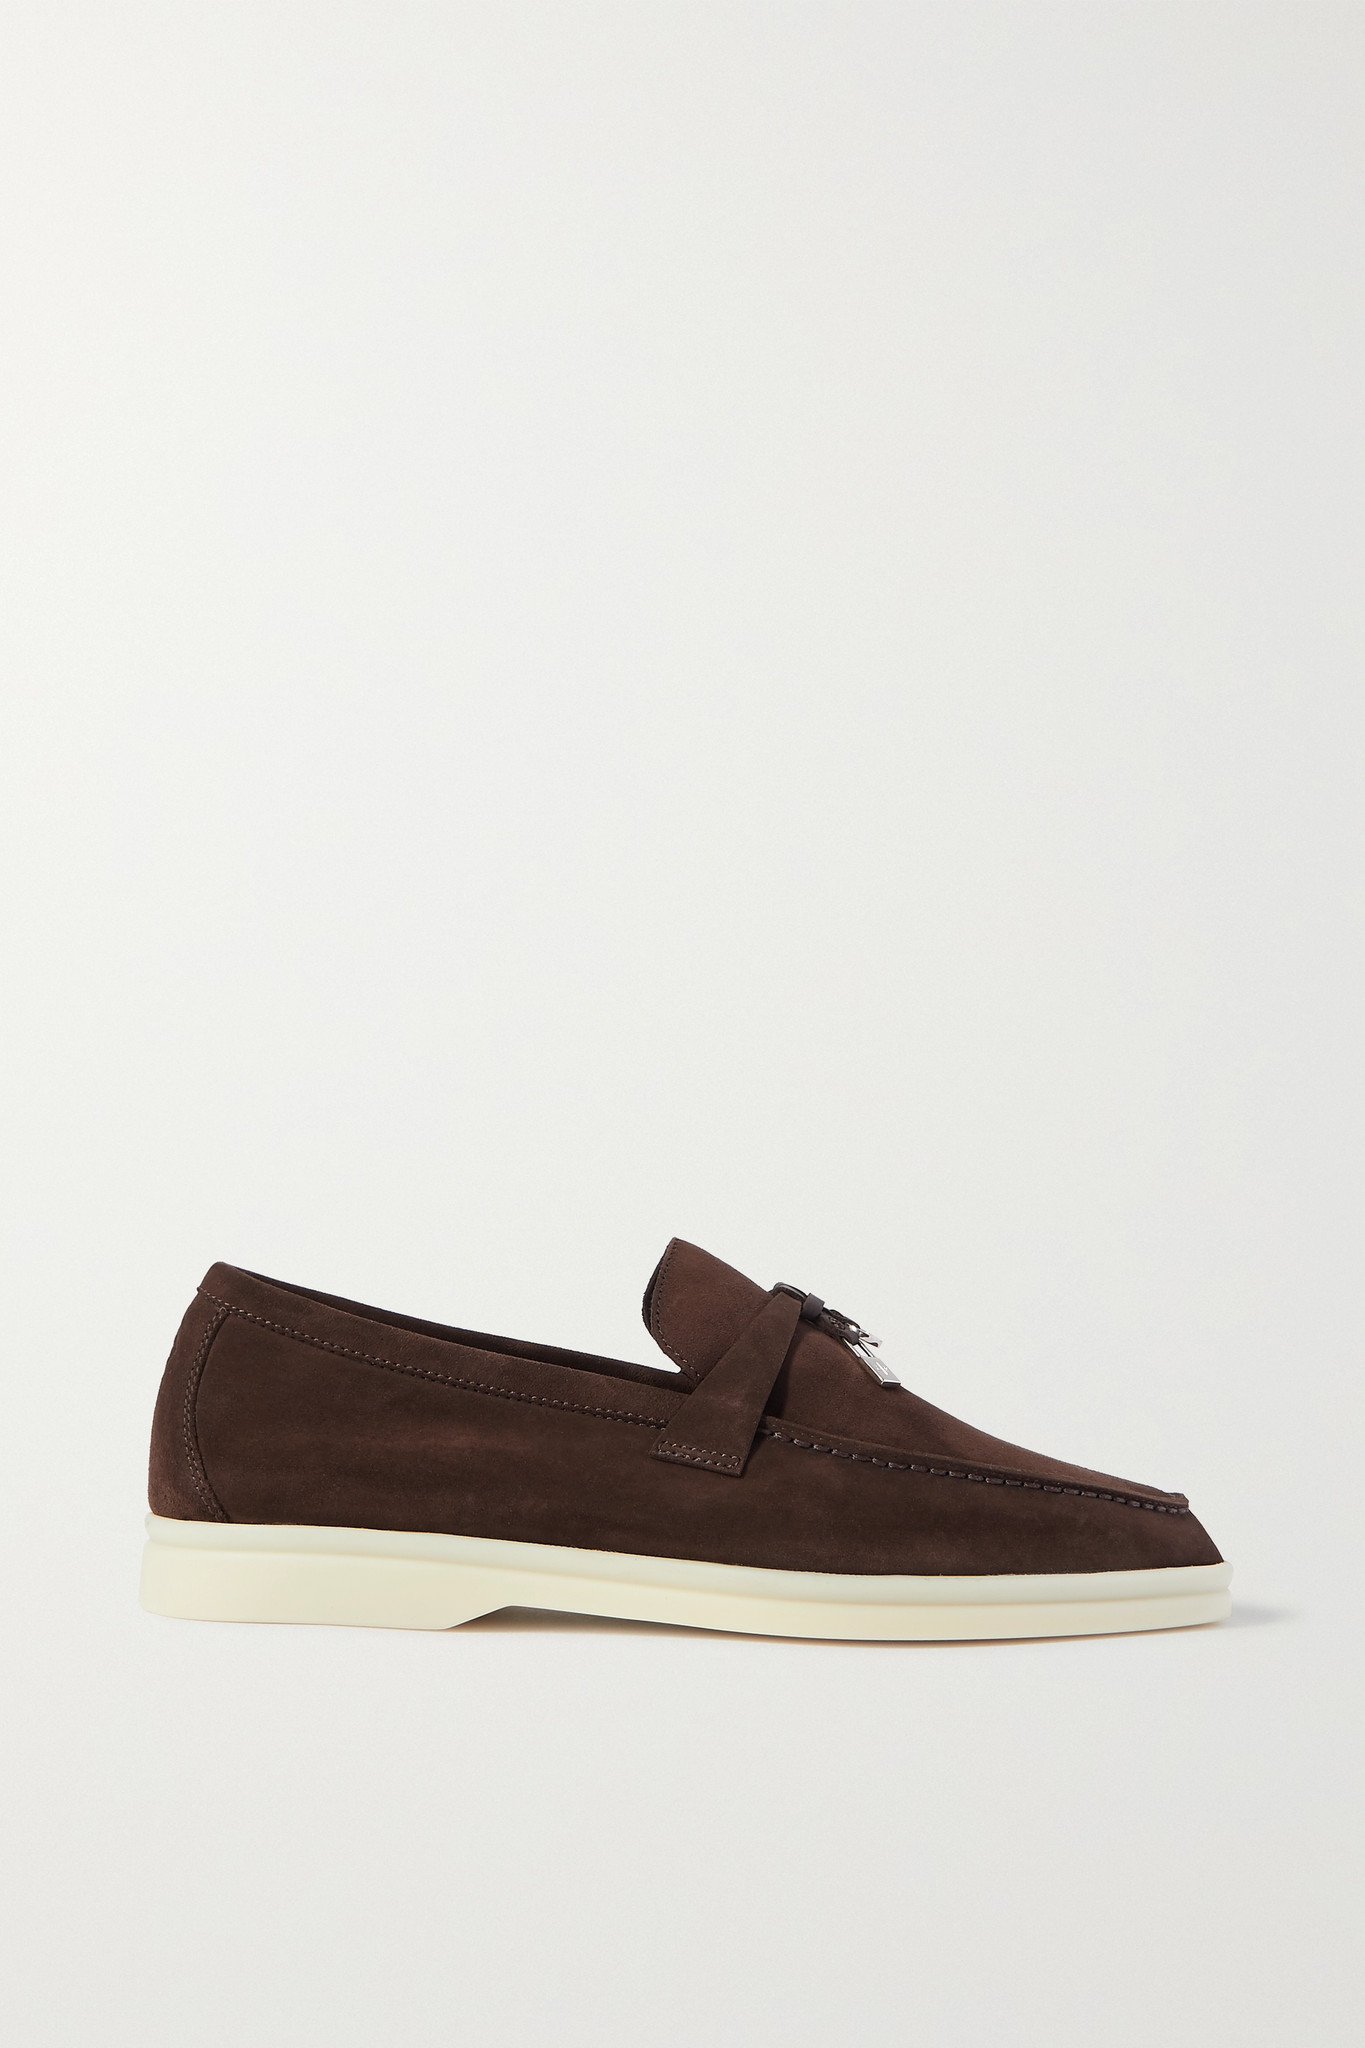 LORO PIANA - Summer Charms Walk Suede Loafers - Brown - IT38